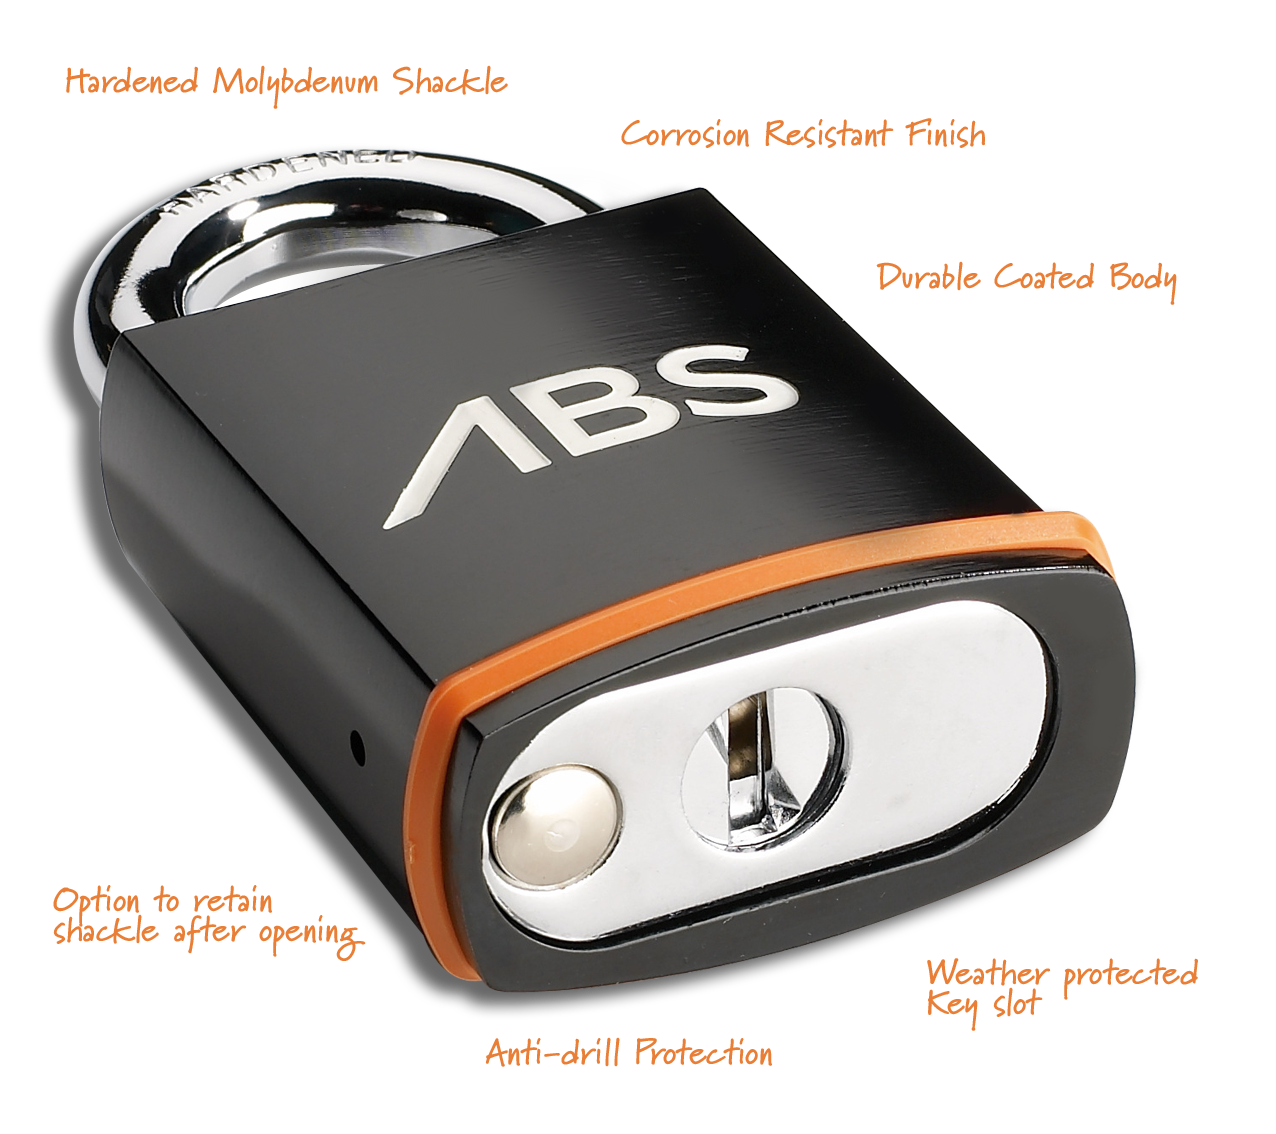 ABS padlock features